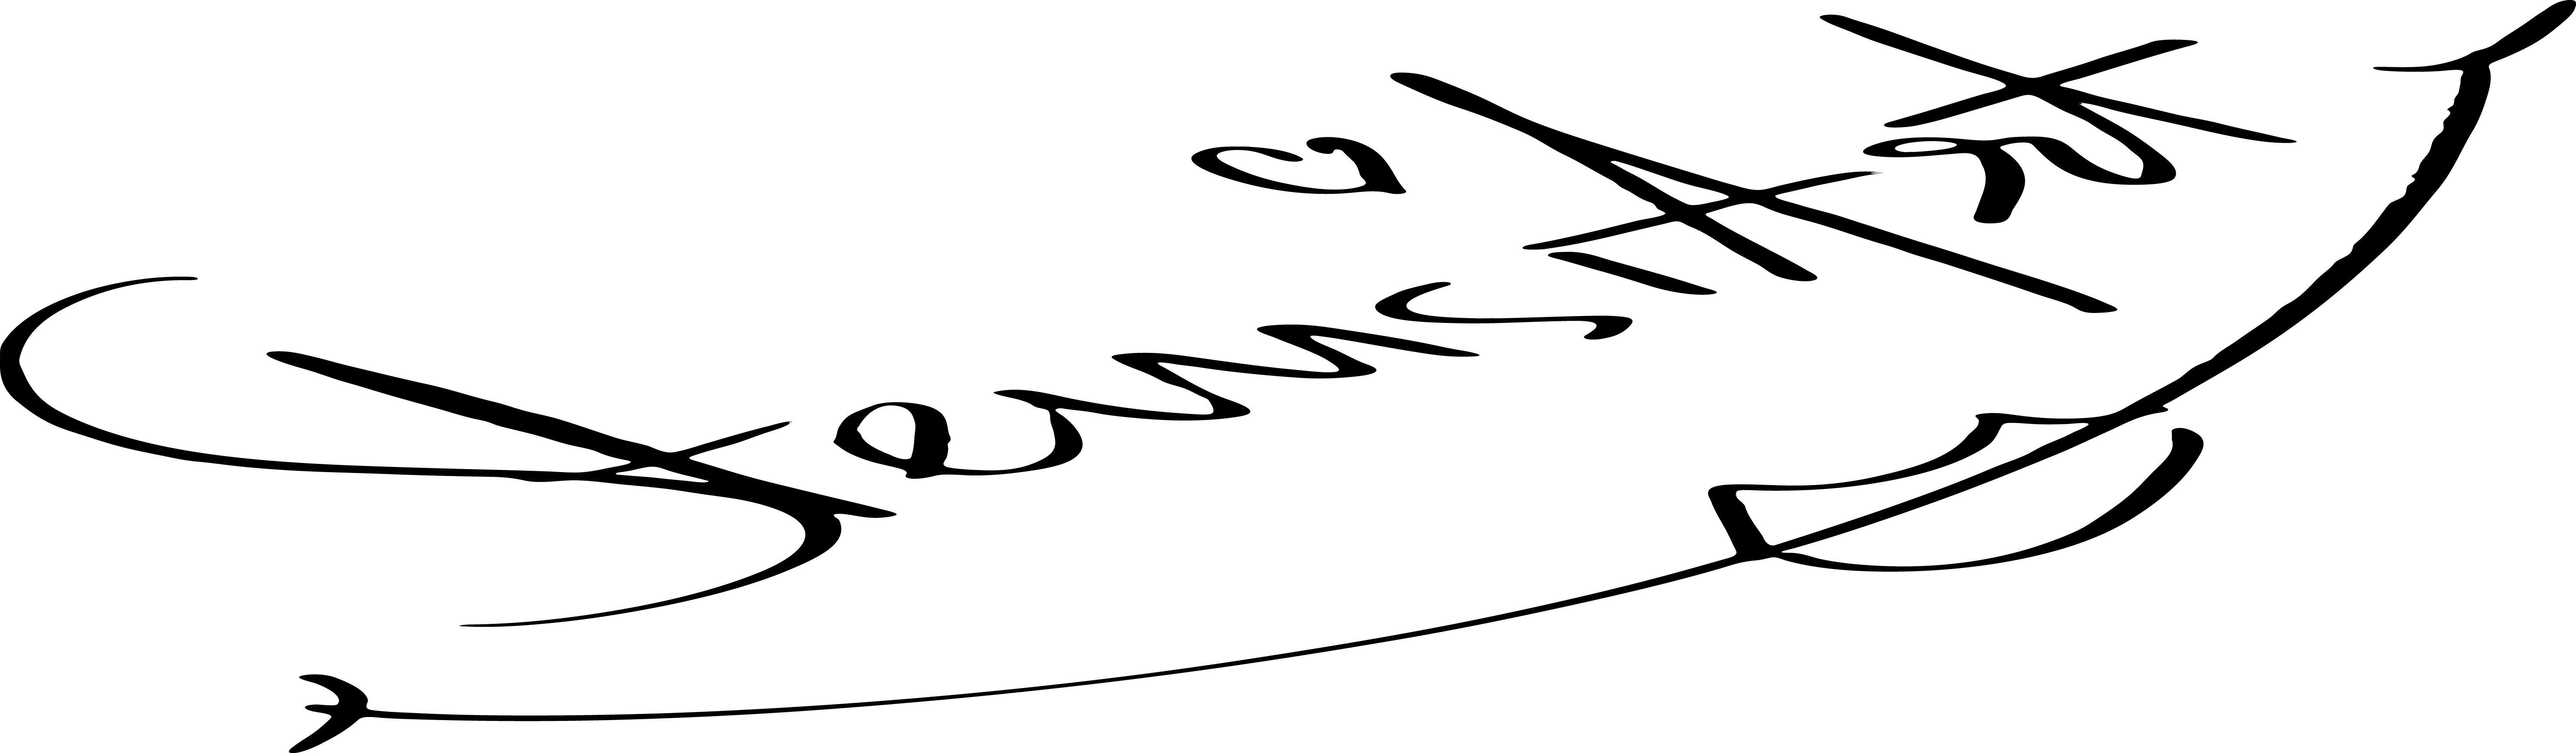 Karl Sternath's Signature